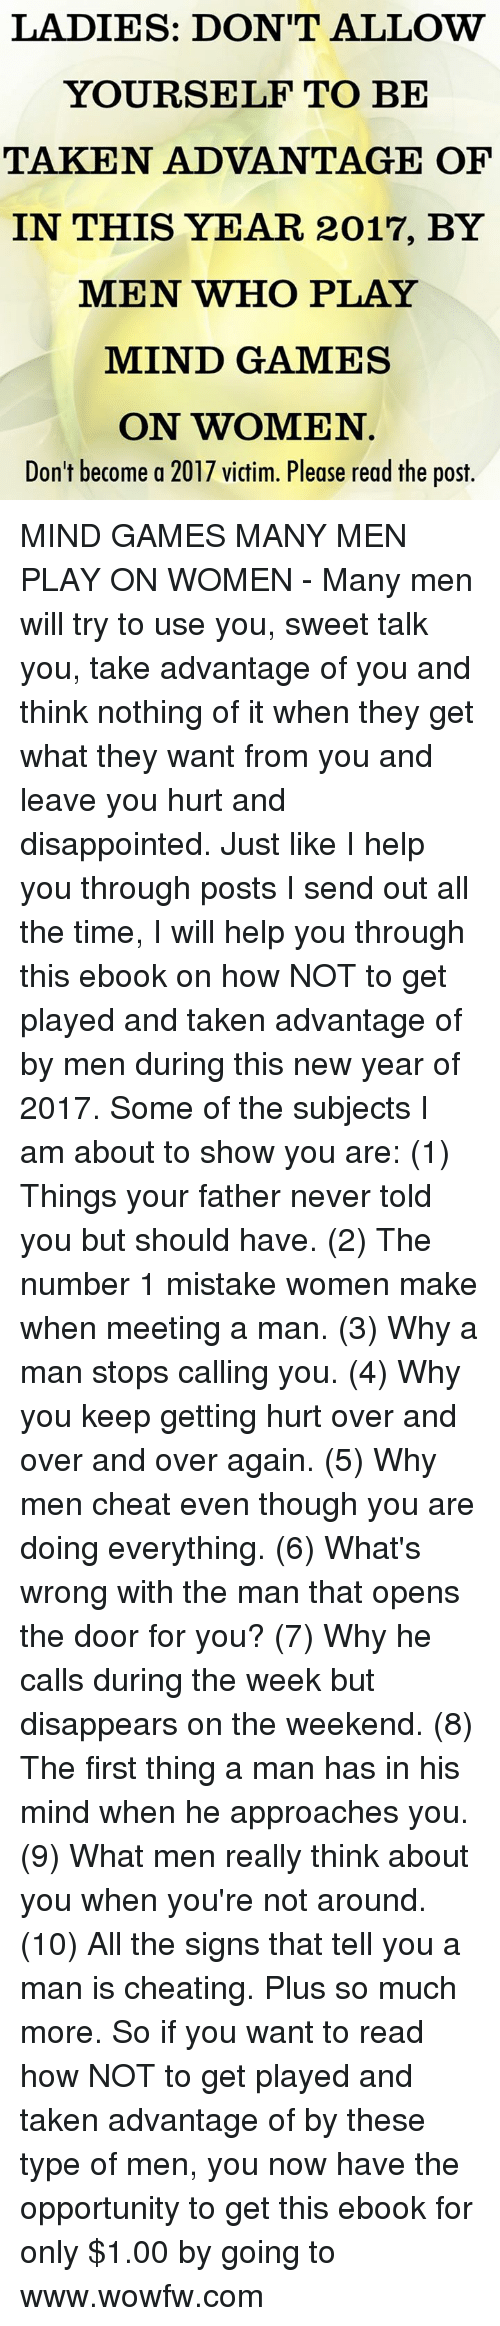 Cheating, Disappointed, and Memes: LADIES: DON'T ALLOW  YOURSELF TO BE  TAKEN ADVANTAGE OF  IN THIS YEAR 2017, BY  MEN WHO PLAY  MIND GAMES  ON WOMEN  Don't become a 2017 victim. Please read the post. MIND GAMES MANY MEN PLAY ON WOMEN - Many men will try to use you, sweet talk you, take advantage of you and think nothing of it when they get what they want from you and leave you hurt and disappointed. Just like I help you through posts I send out all the time, I will help you through this ebook on how NOT to get played and taken advantage of by men during this new year of 2017. Some of the subjects I am about to show you are:   (1) Things your father never told you but should have.  (2) The number 1 mistake women make when meeting a man.  (3) Why a man stops calling you.  (4) Why you keep getting hurt over and over and over again.  (5) Why men cheat even though you are doing everything.  (6) What's wrong with the man that opens the door for you?  (7) Why he calls during the week but disappears on the weekend.  (8) The first thing a man has in his mind when he approaches you.  (9) What men really think about you when you're not around.  (10) All the signs that tell you a man is cheating. Plus so much more.   So if you want to read how NOT to get played and taken advantage of by these type of men, you now have the opportunity to get this ebook for only $1.00 by going to www.wowfw.com